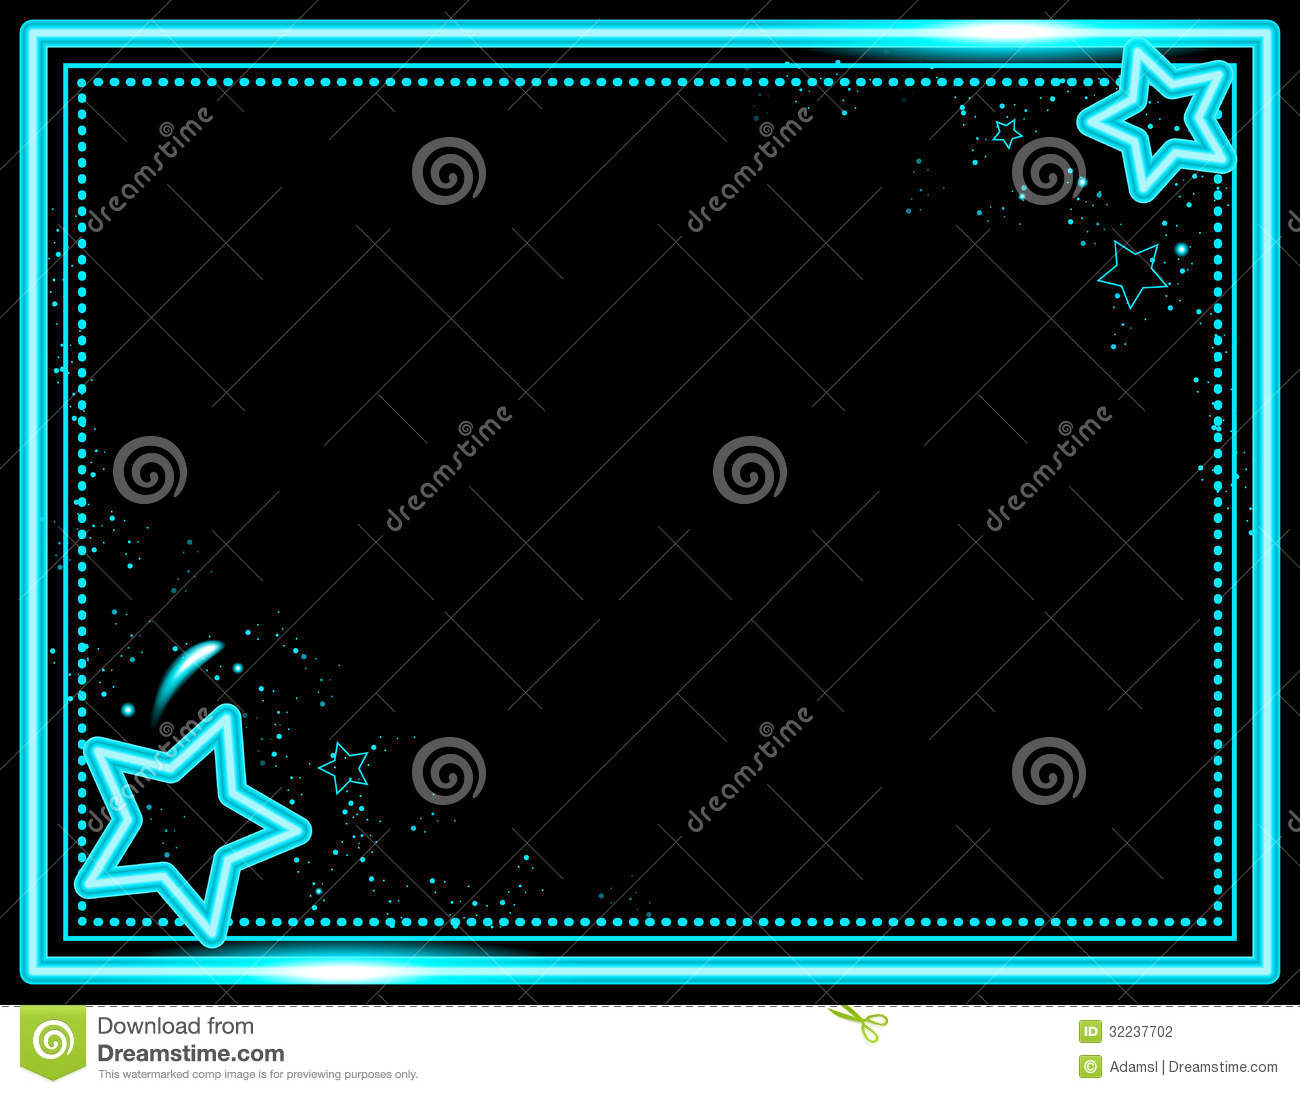 Stars and sparkle decorate this neon colored frame background.